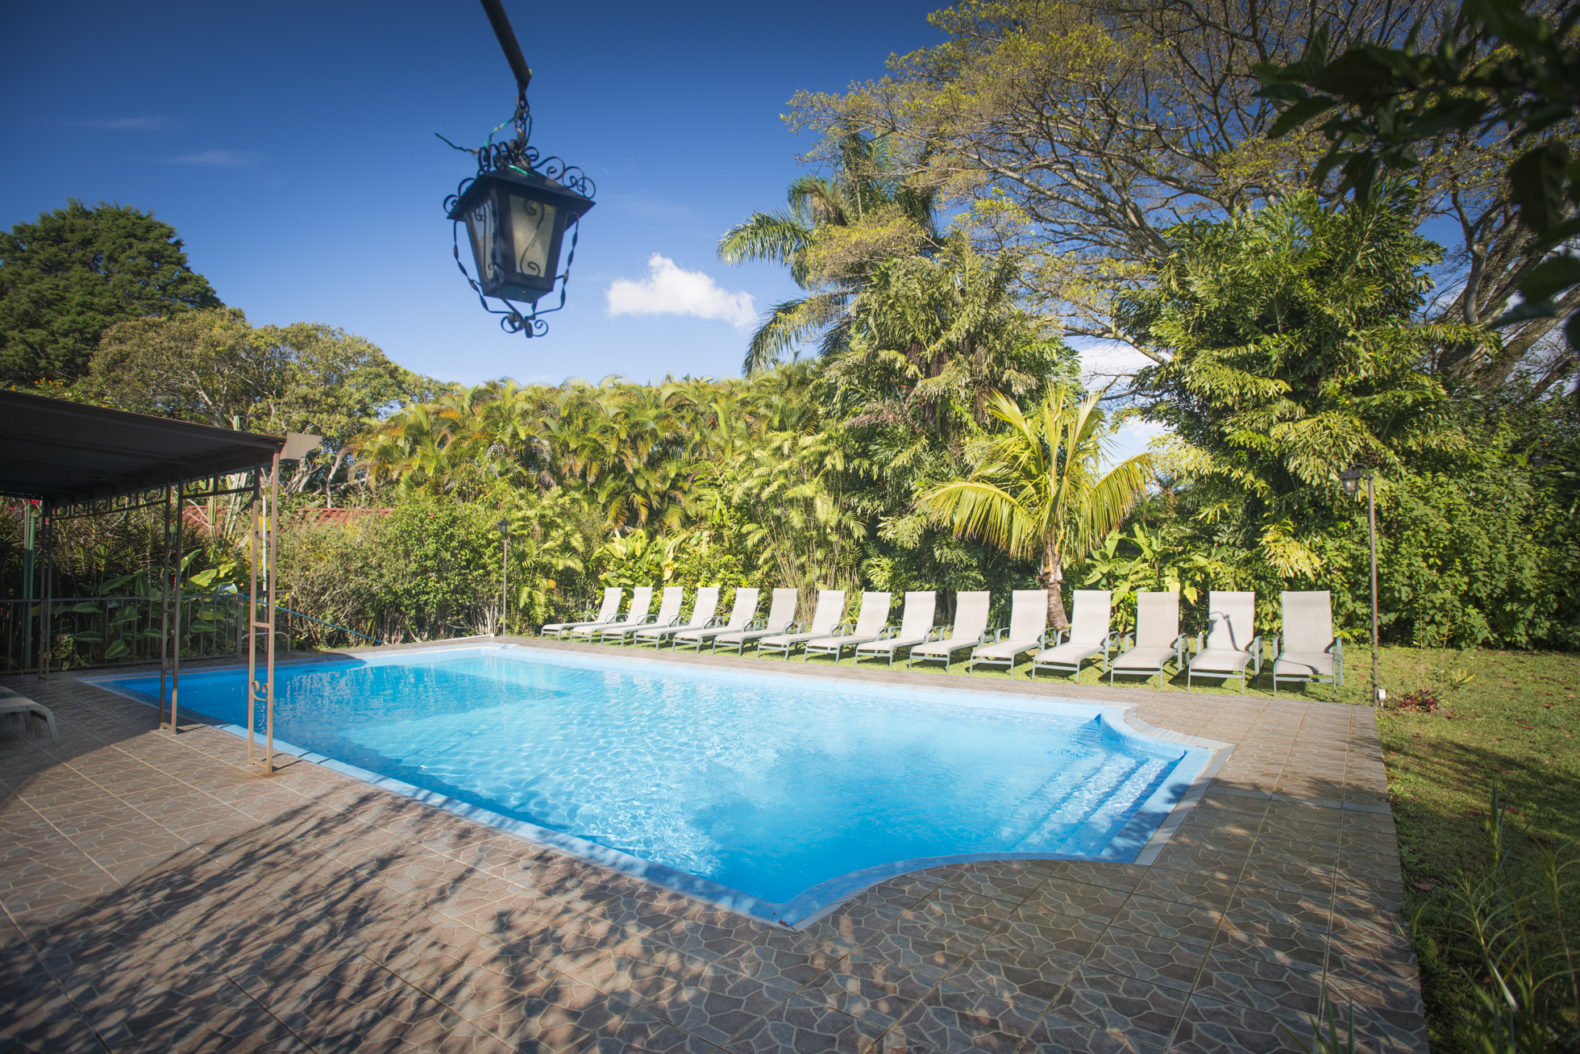 swimming-pool-outdoor-sports-activities-natural-surrounding-sunbeds-pura-vida-retreat-spa-costa-rica-1.jpg